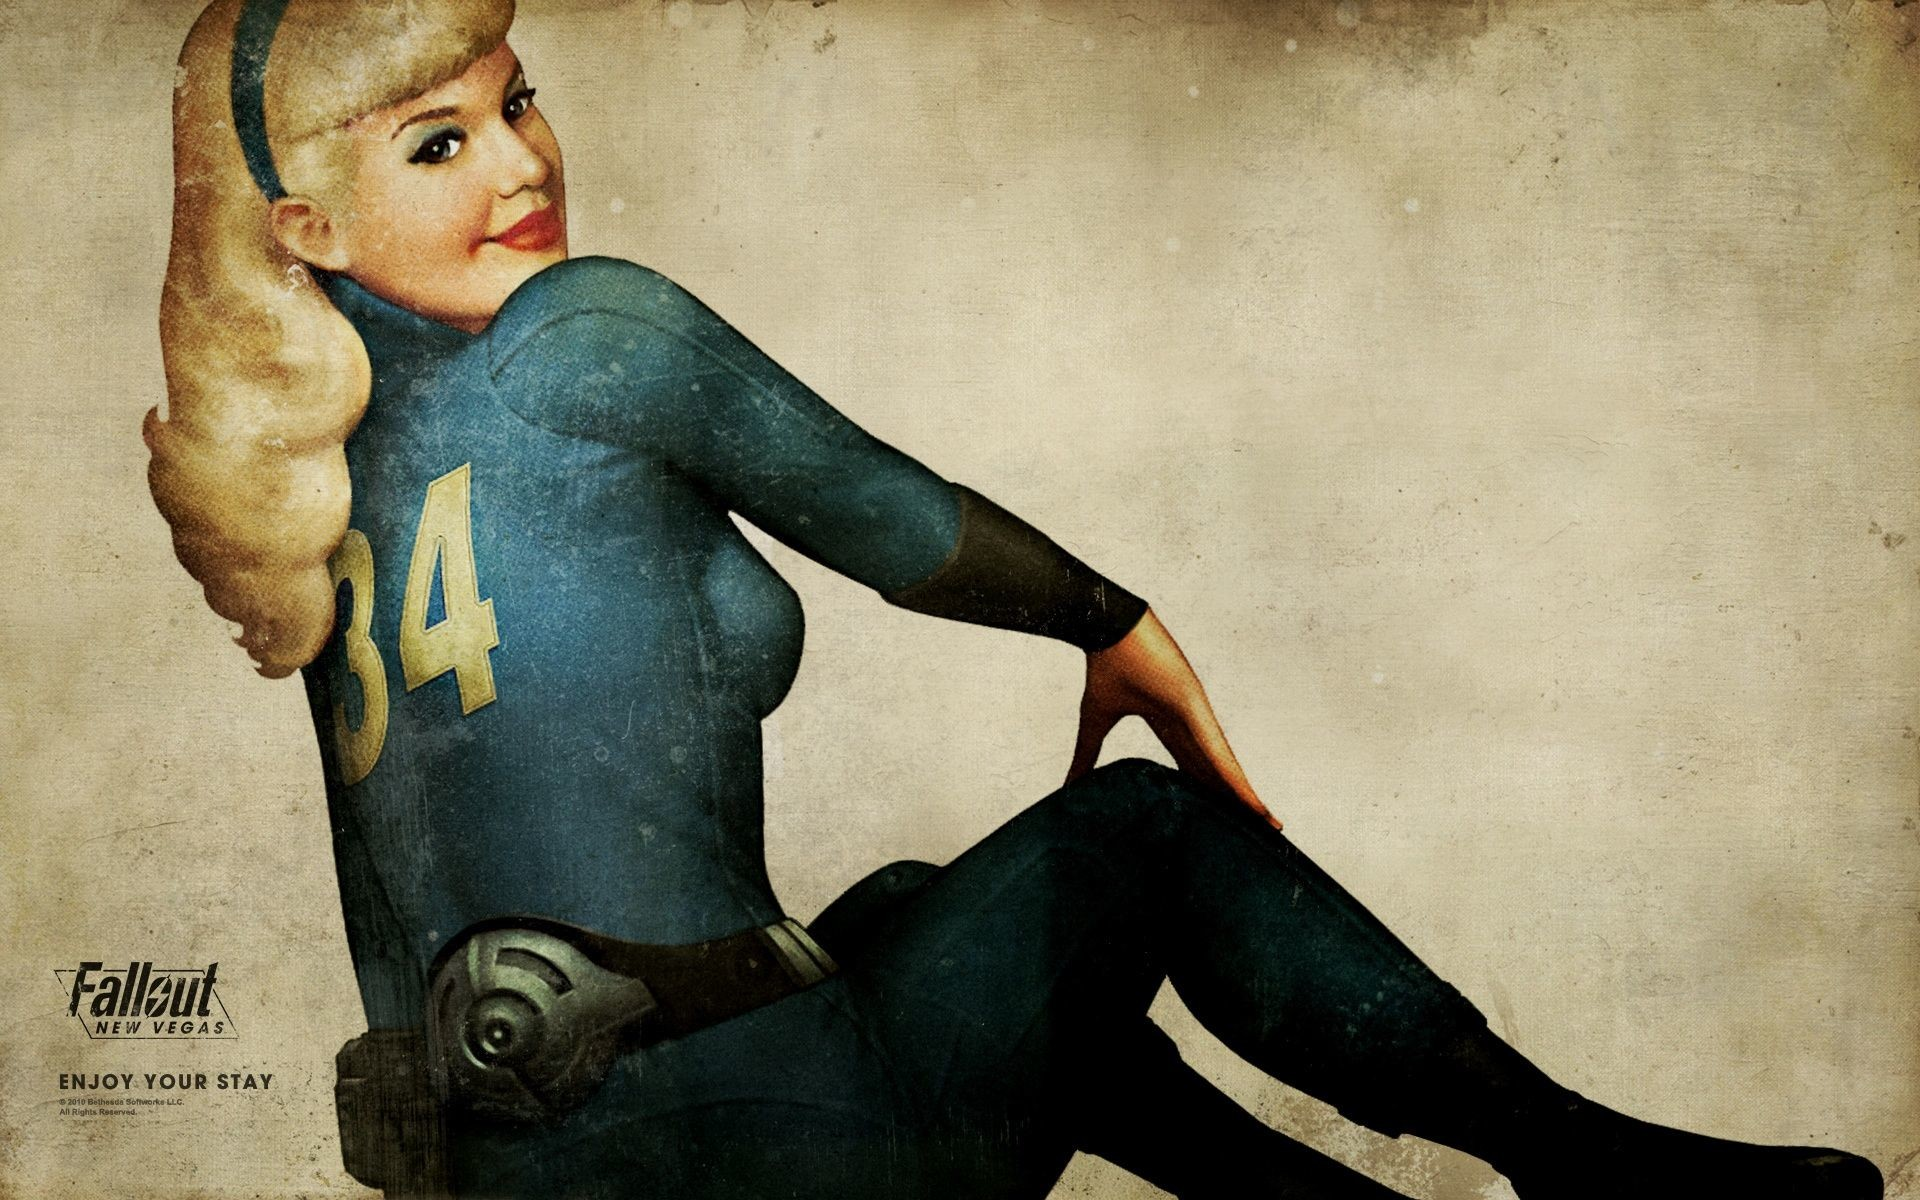 Love Wallpaper Full Hd Boy And Girl Sexy Fallout 4 Wallpaper 86 Images